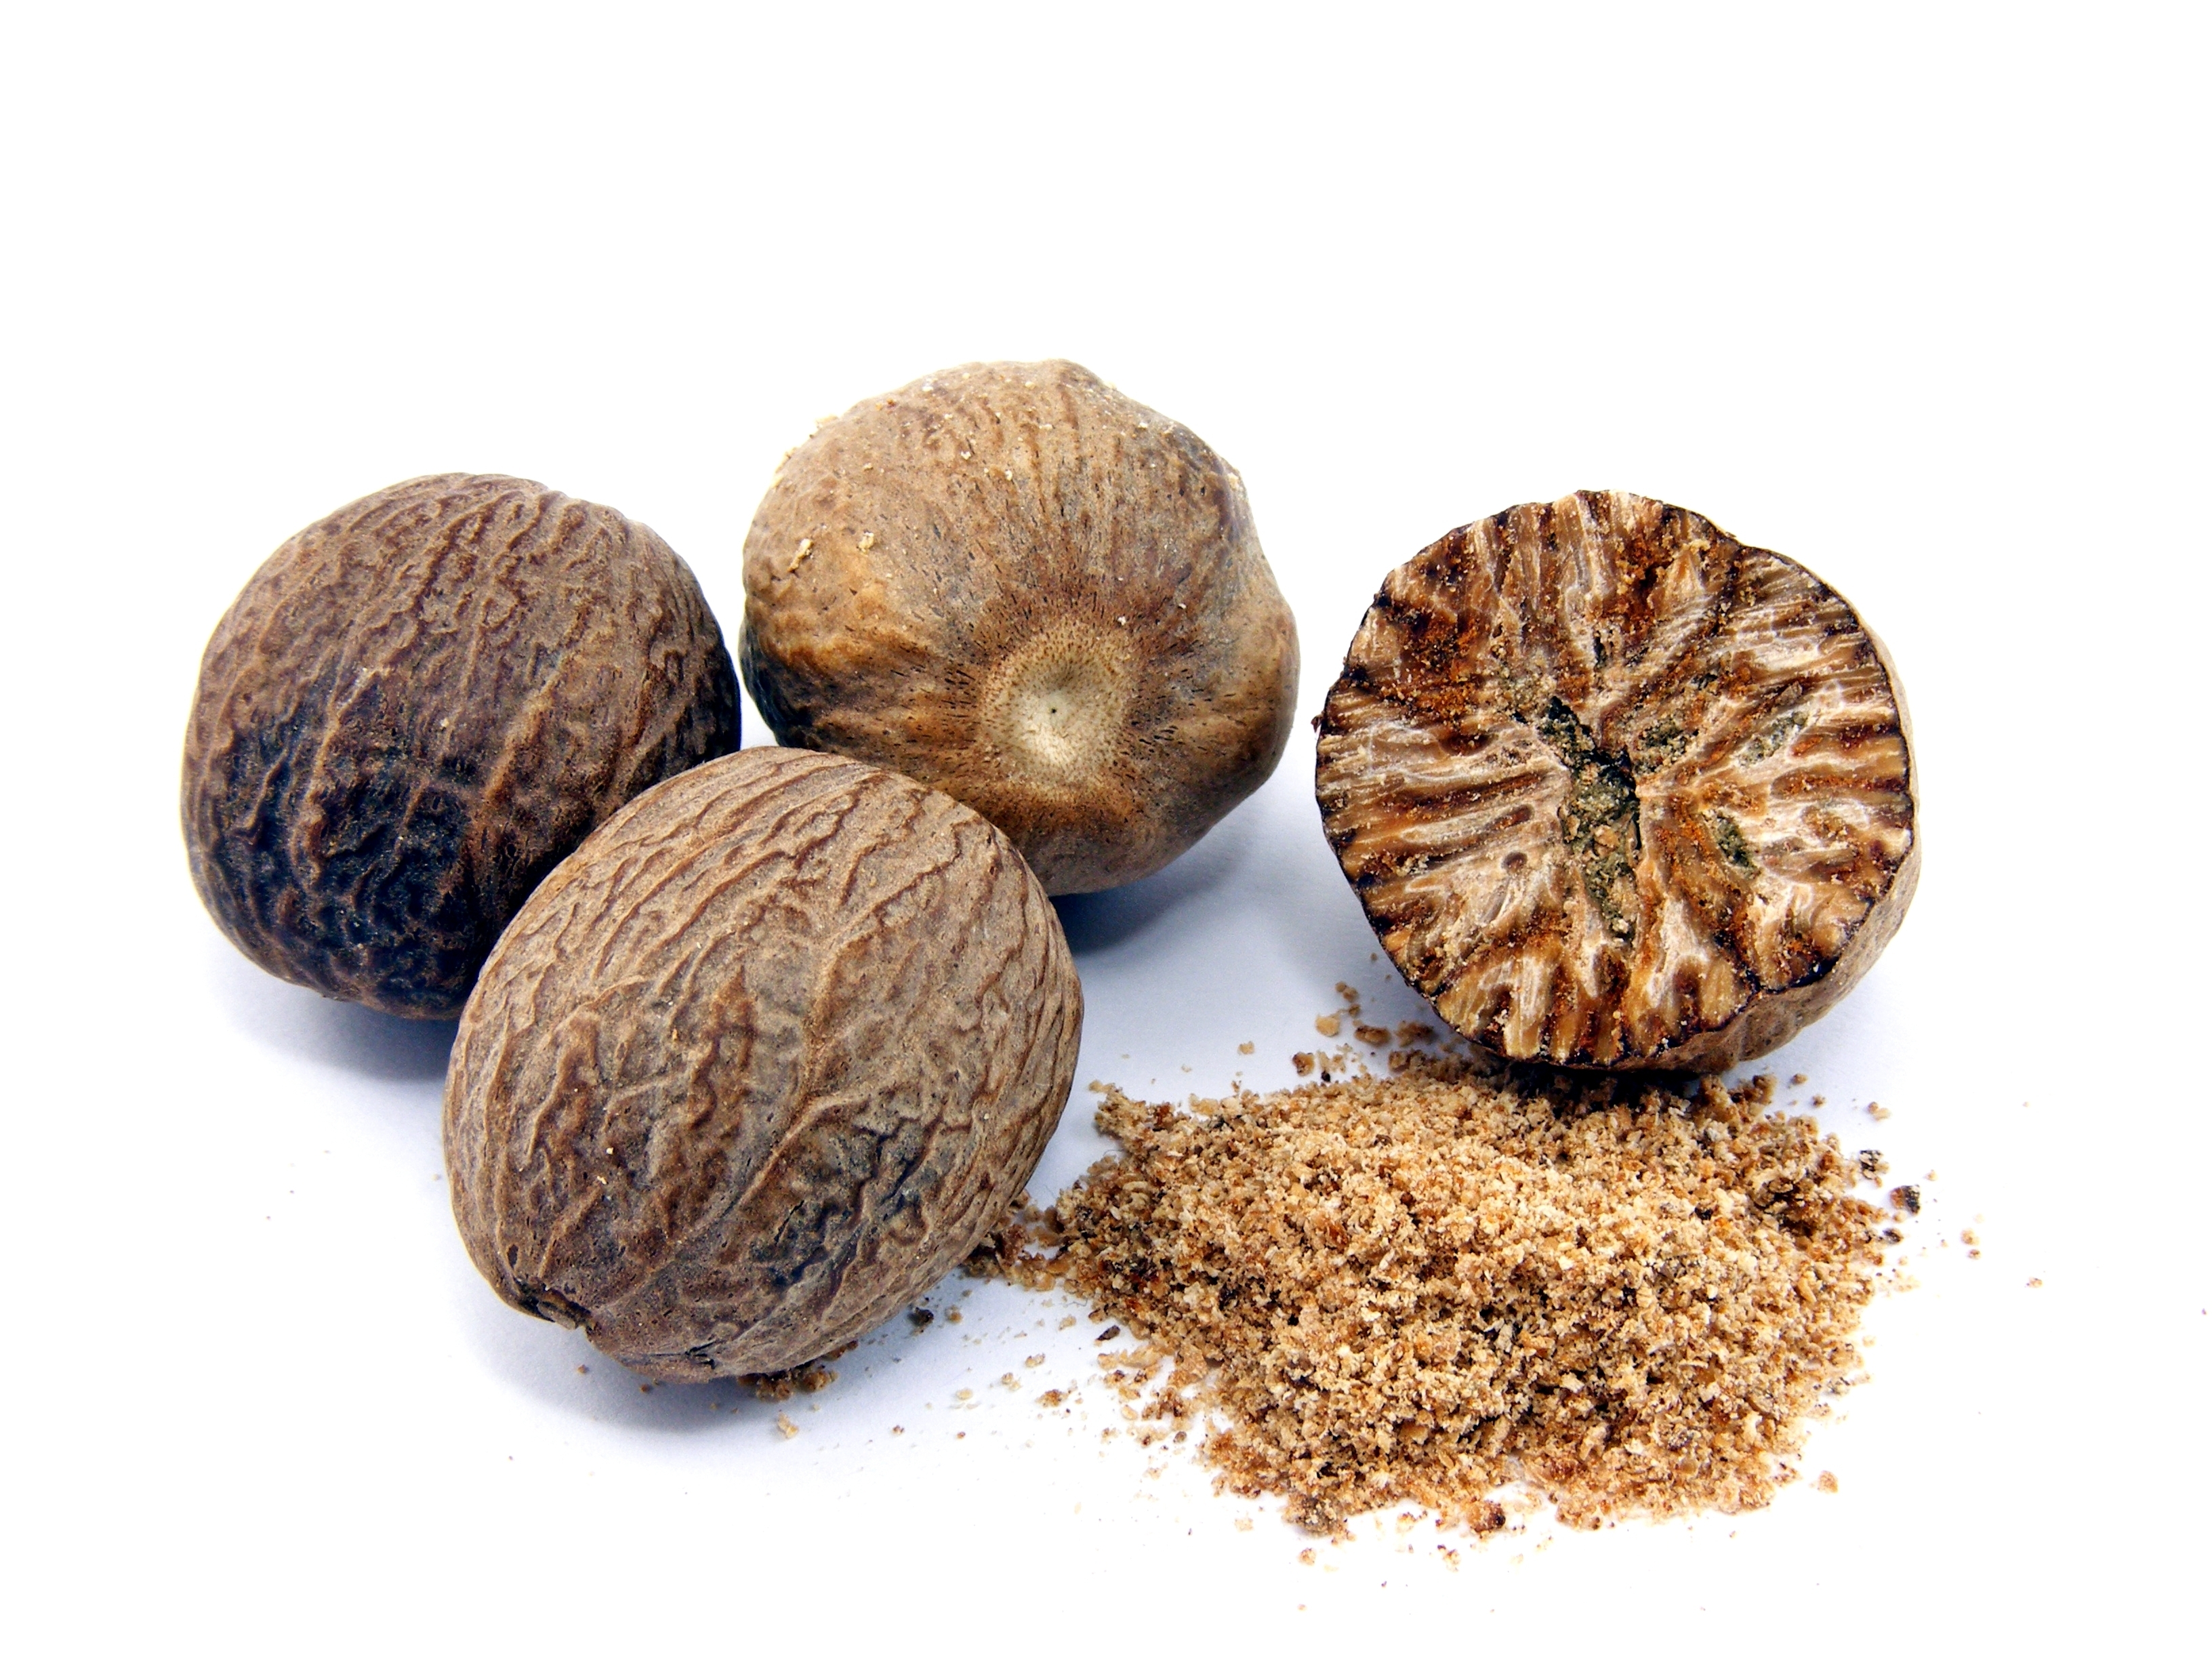 Best quality natural essential oils including Nutmeg Oil - Reconstitution Nutmeg NNO and other fragrance & perfume oils at the most discount rates by BMV Fragrances in UP, India.